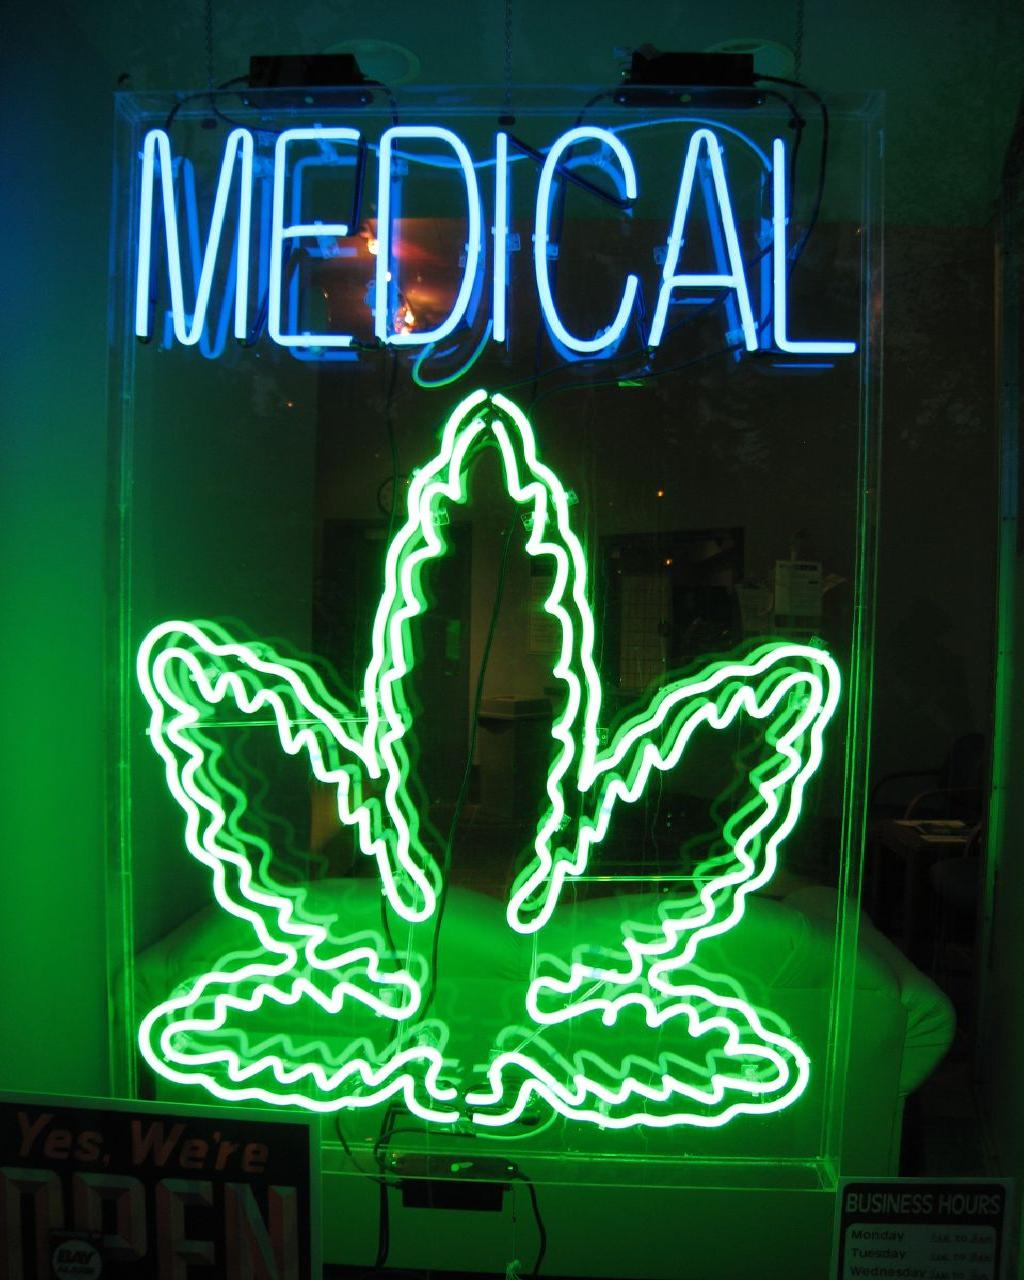 Massachusetts Physicians And The New Medical Marijuana Regulations